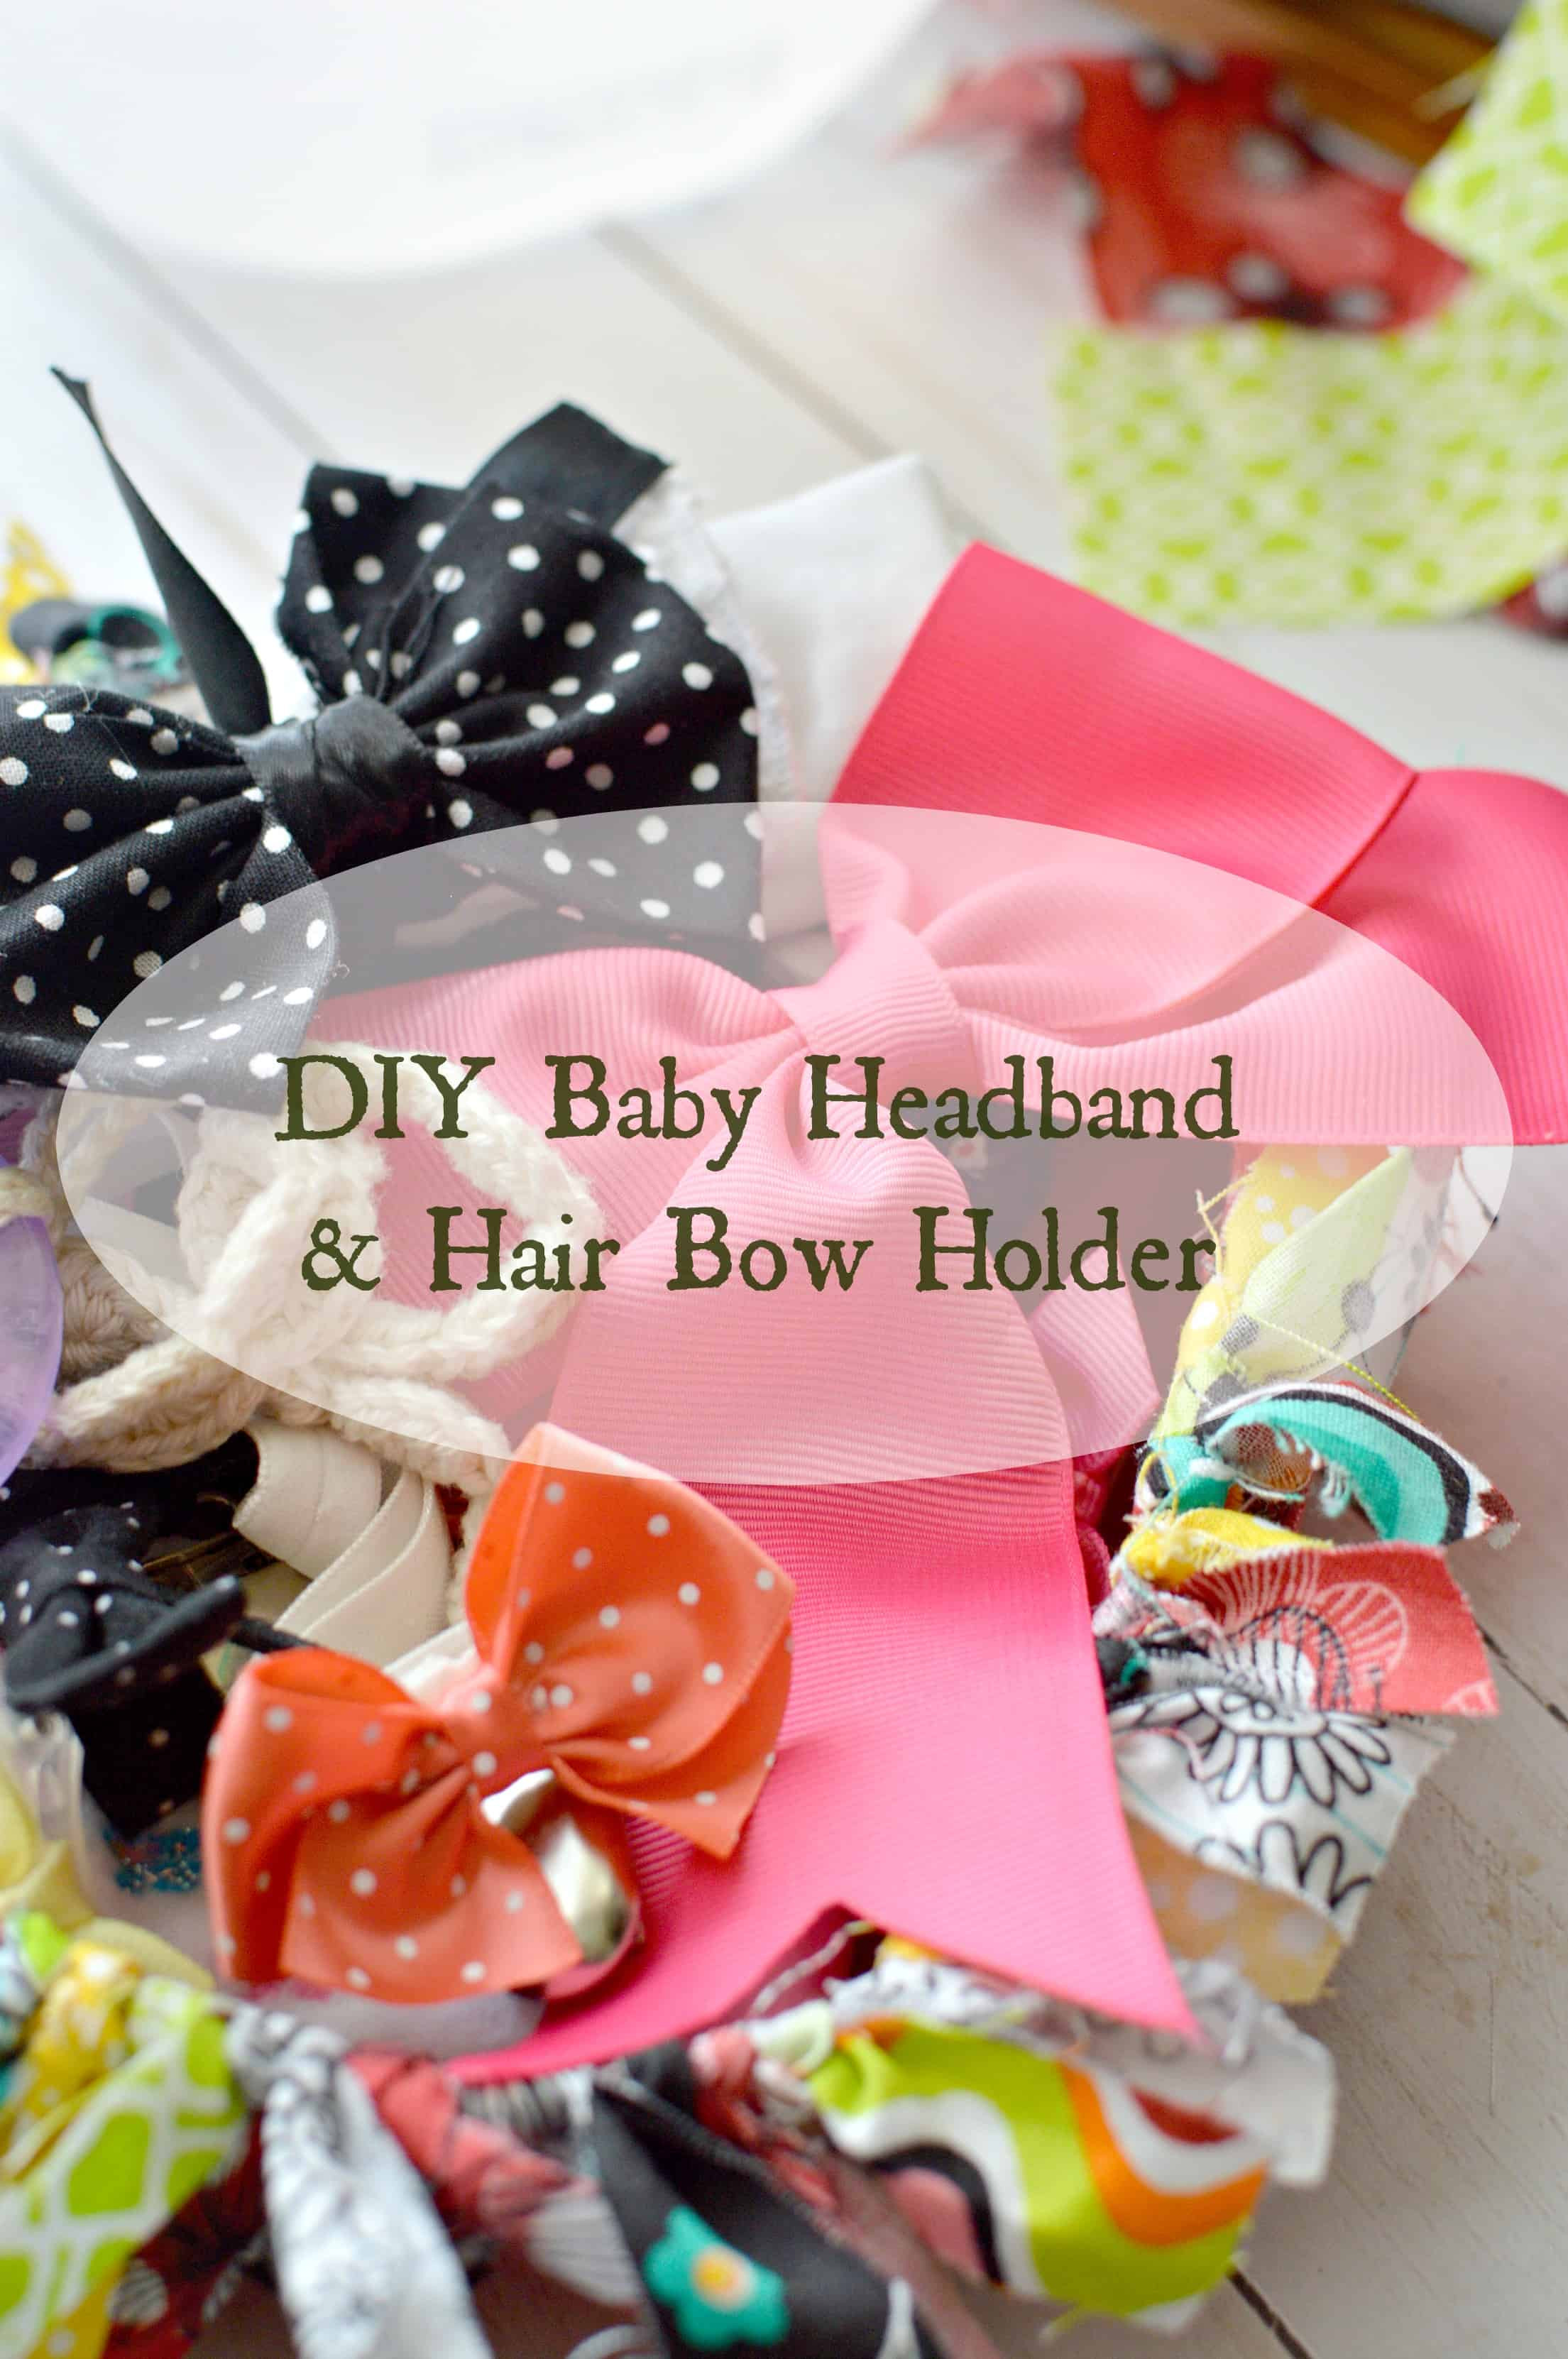 Best ideas about DIY Baby Bow Headband . Save or Pin DIY Baby Headband & Hair Bow Holder Stylish Cravings Now.